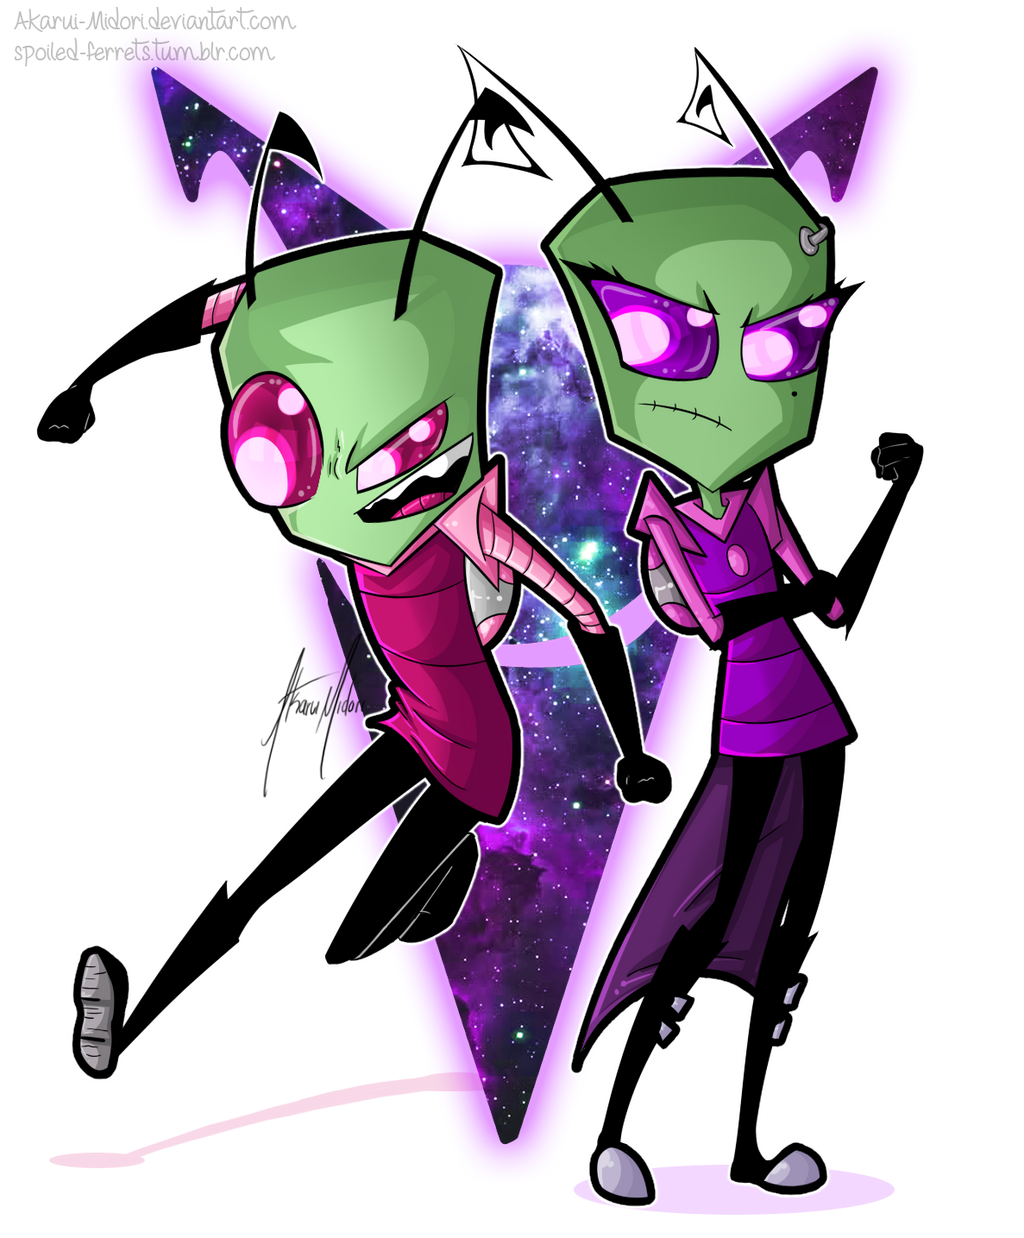 Truly The Best 'Invaders' by viscarla